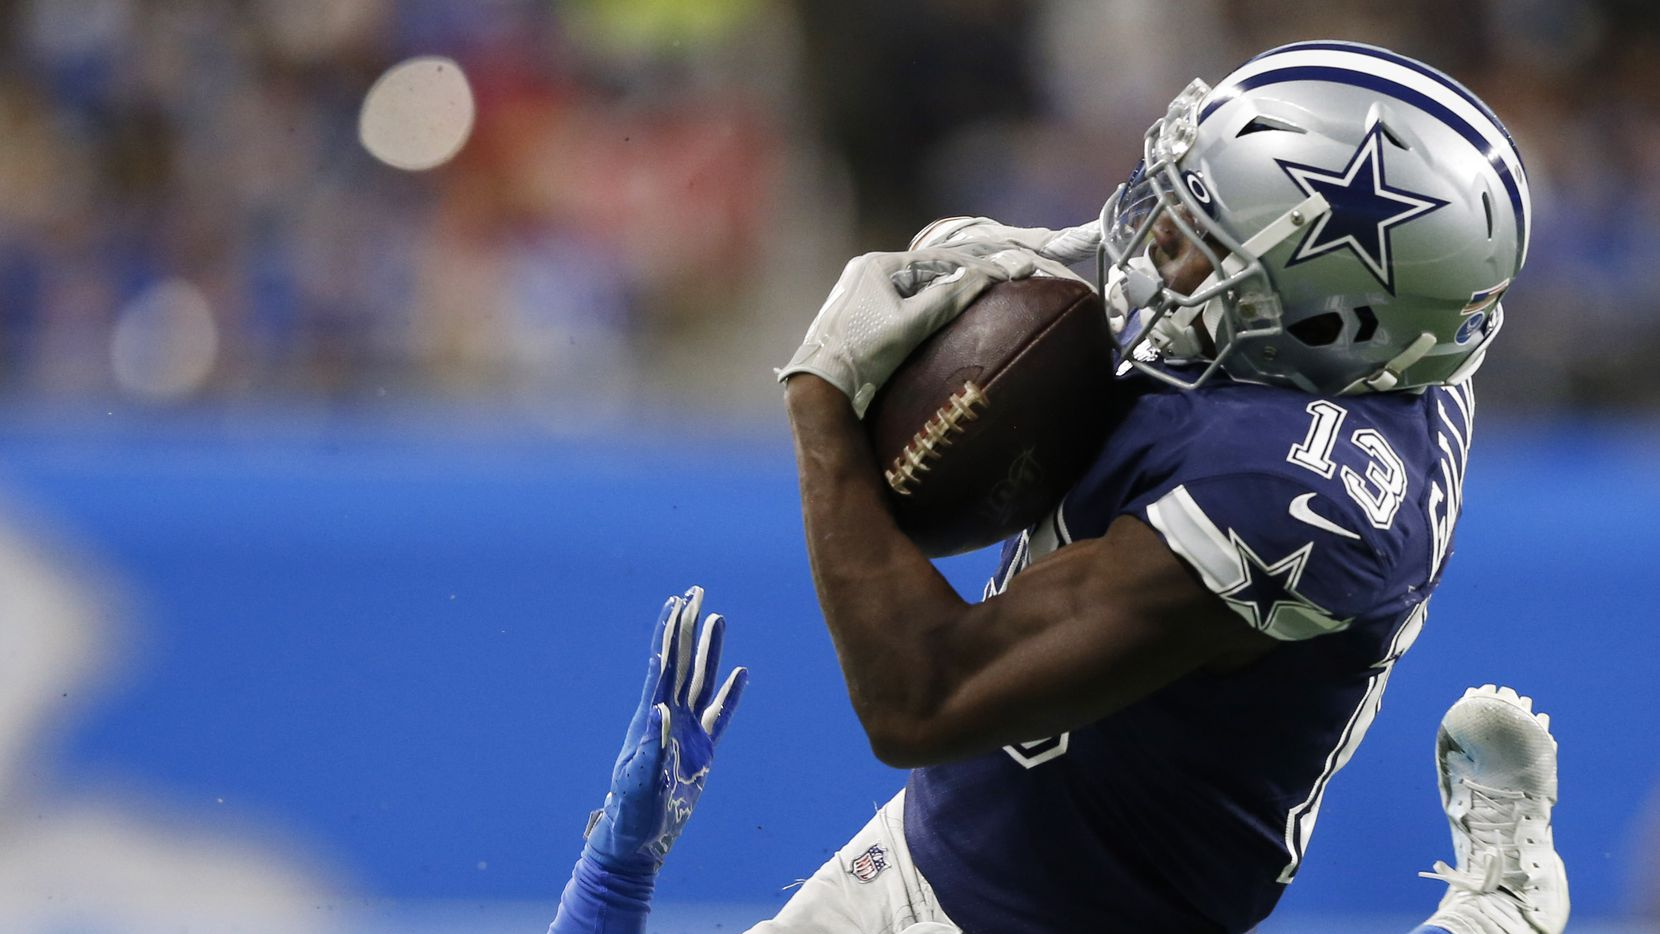 Dallas Cowboys wide receiver Michael Gallup (13) catches a pass in front of Detroit Lions defensive back Mike Ford (38) during the first half of play at Ford Field in Detroit, on Sunday, November 17, 2019. (Vernon Bryant/The Dallas Morning News)